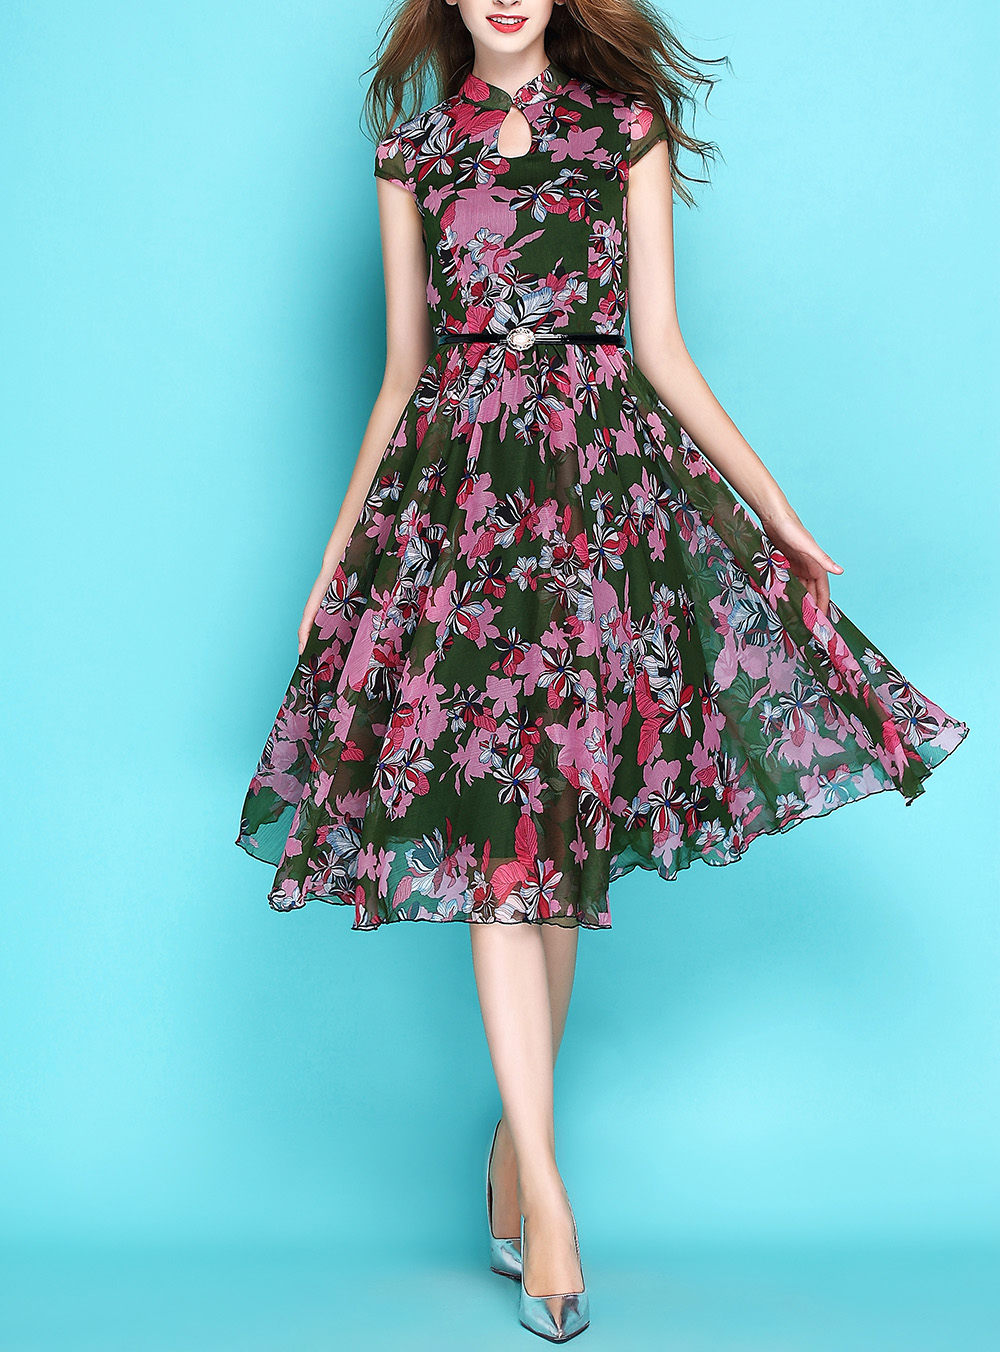 Floral dress online shopping malaysia